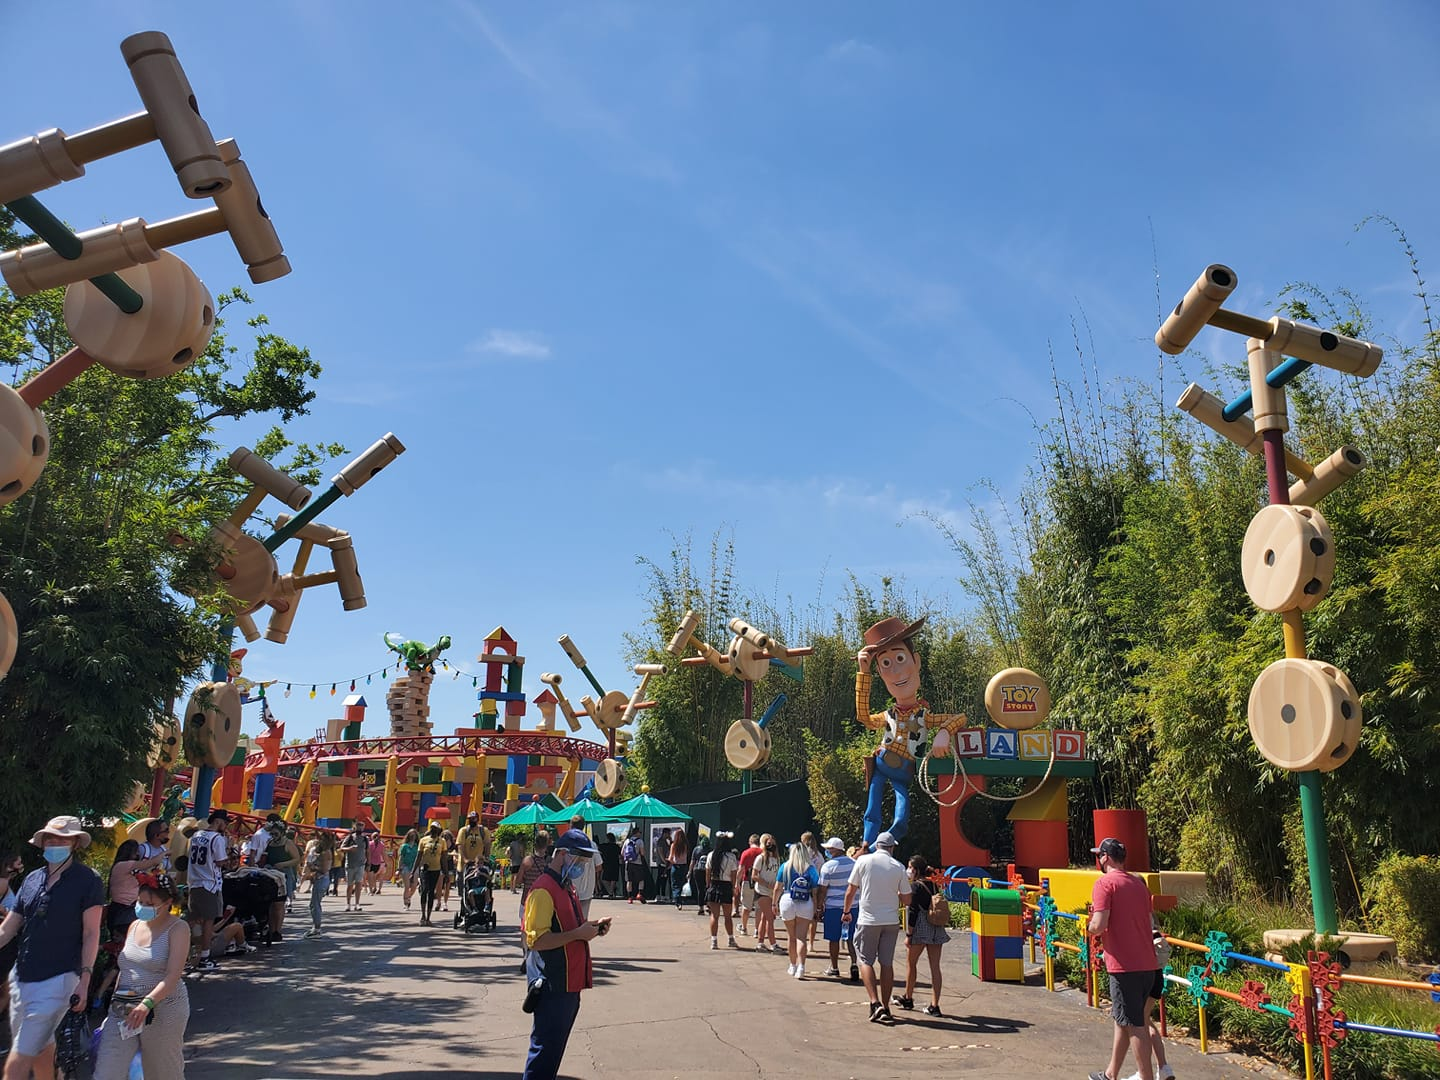 Slinky Dog ride queue with a 45 minute wait approximately